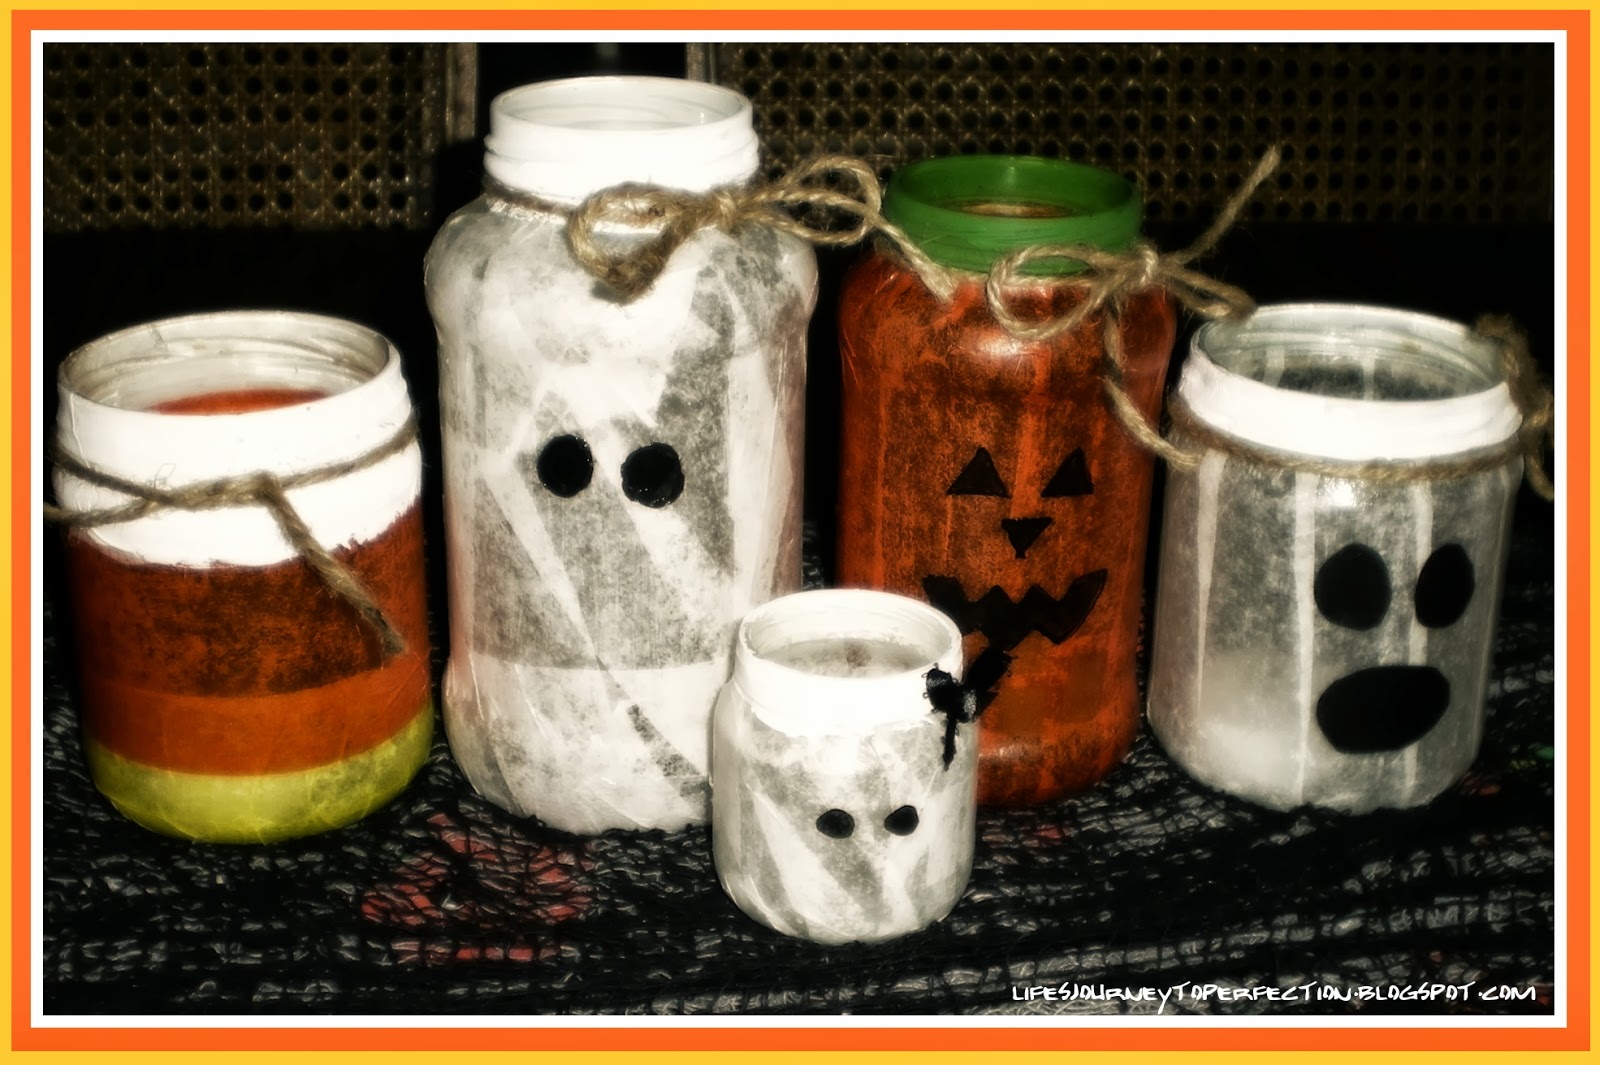 Life S Journey To Perfection Halloween Craft 5